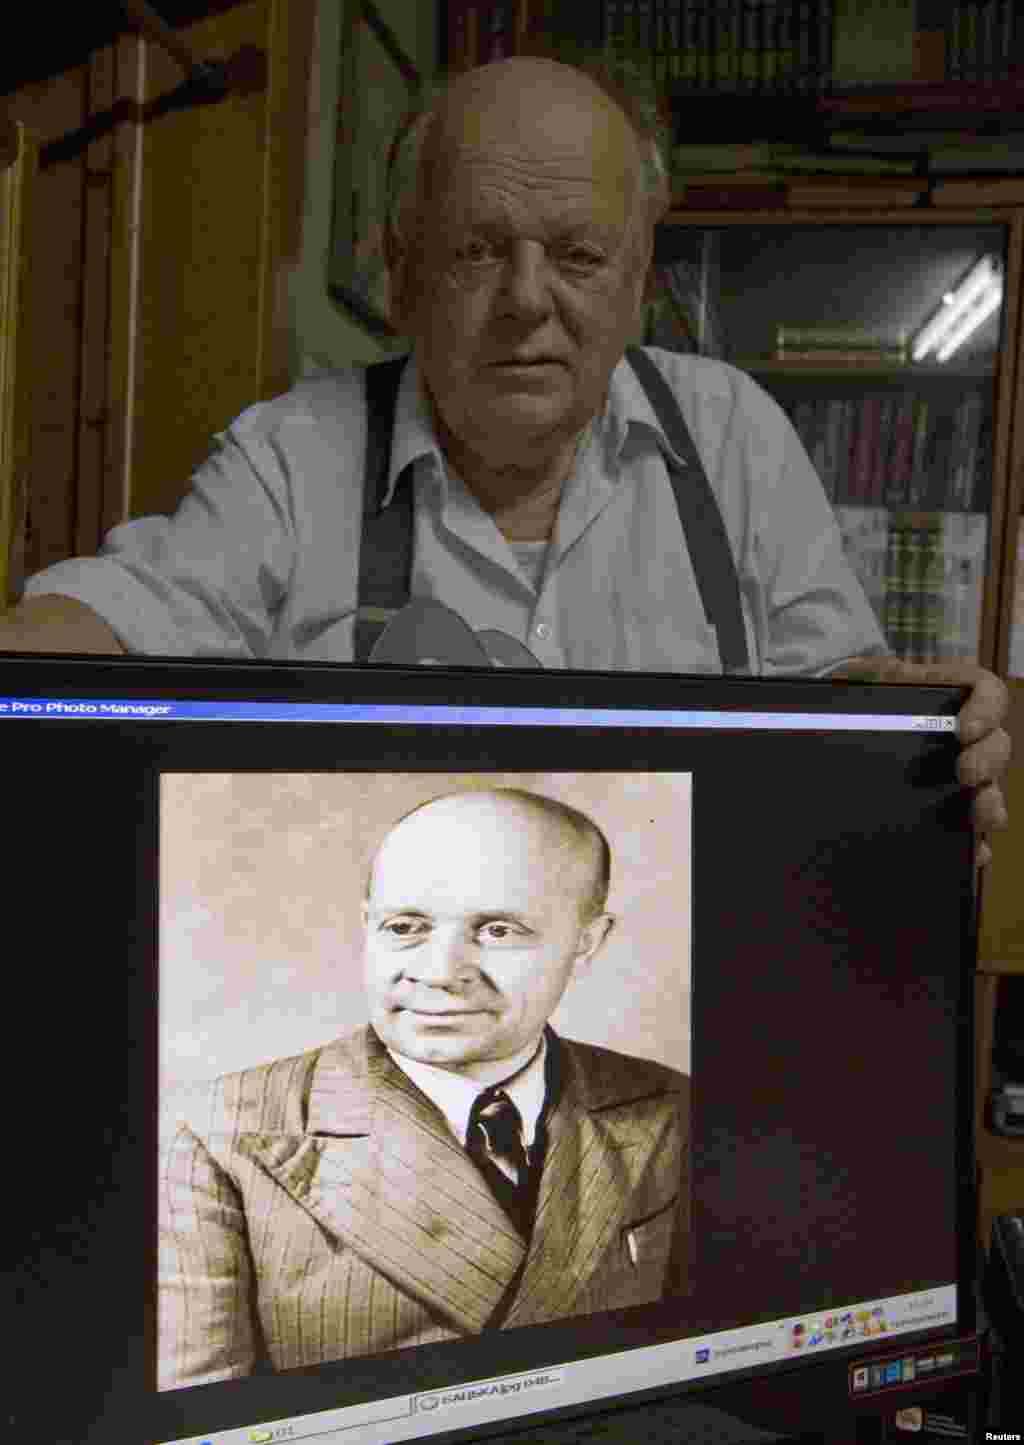 Stanislau Shushkevich, the first leader of independent Belarus, shows a portrait of his father, Stanislau, on a computer screen in Minsk. Shushkevich says his father was arrested twice, in 1936 and 1948, but survived the camps to return home.